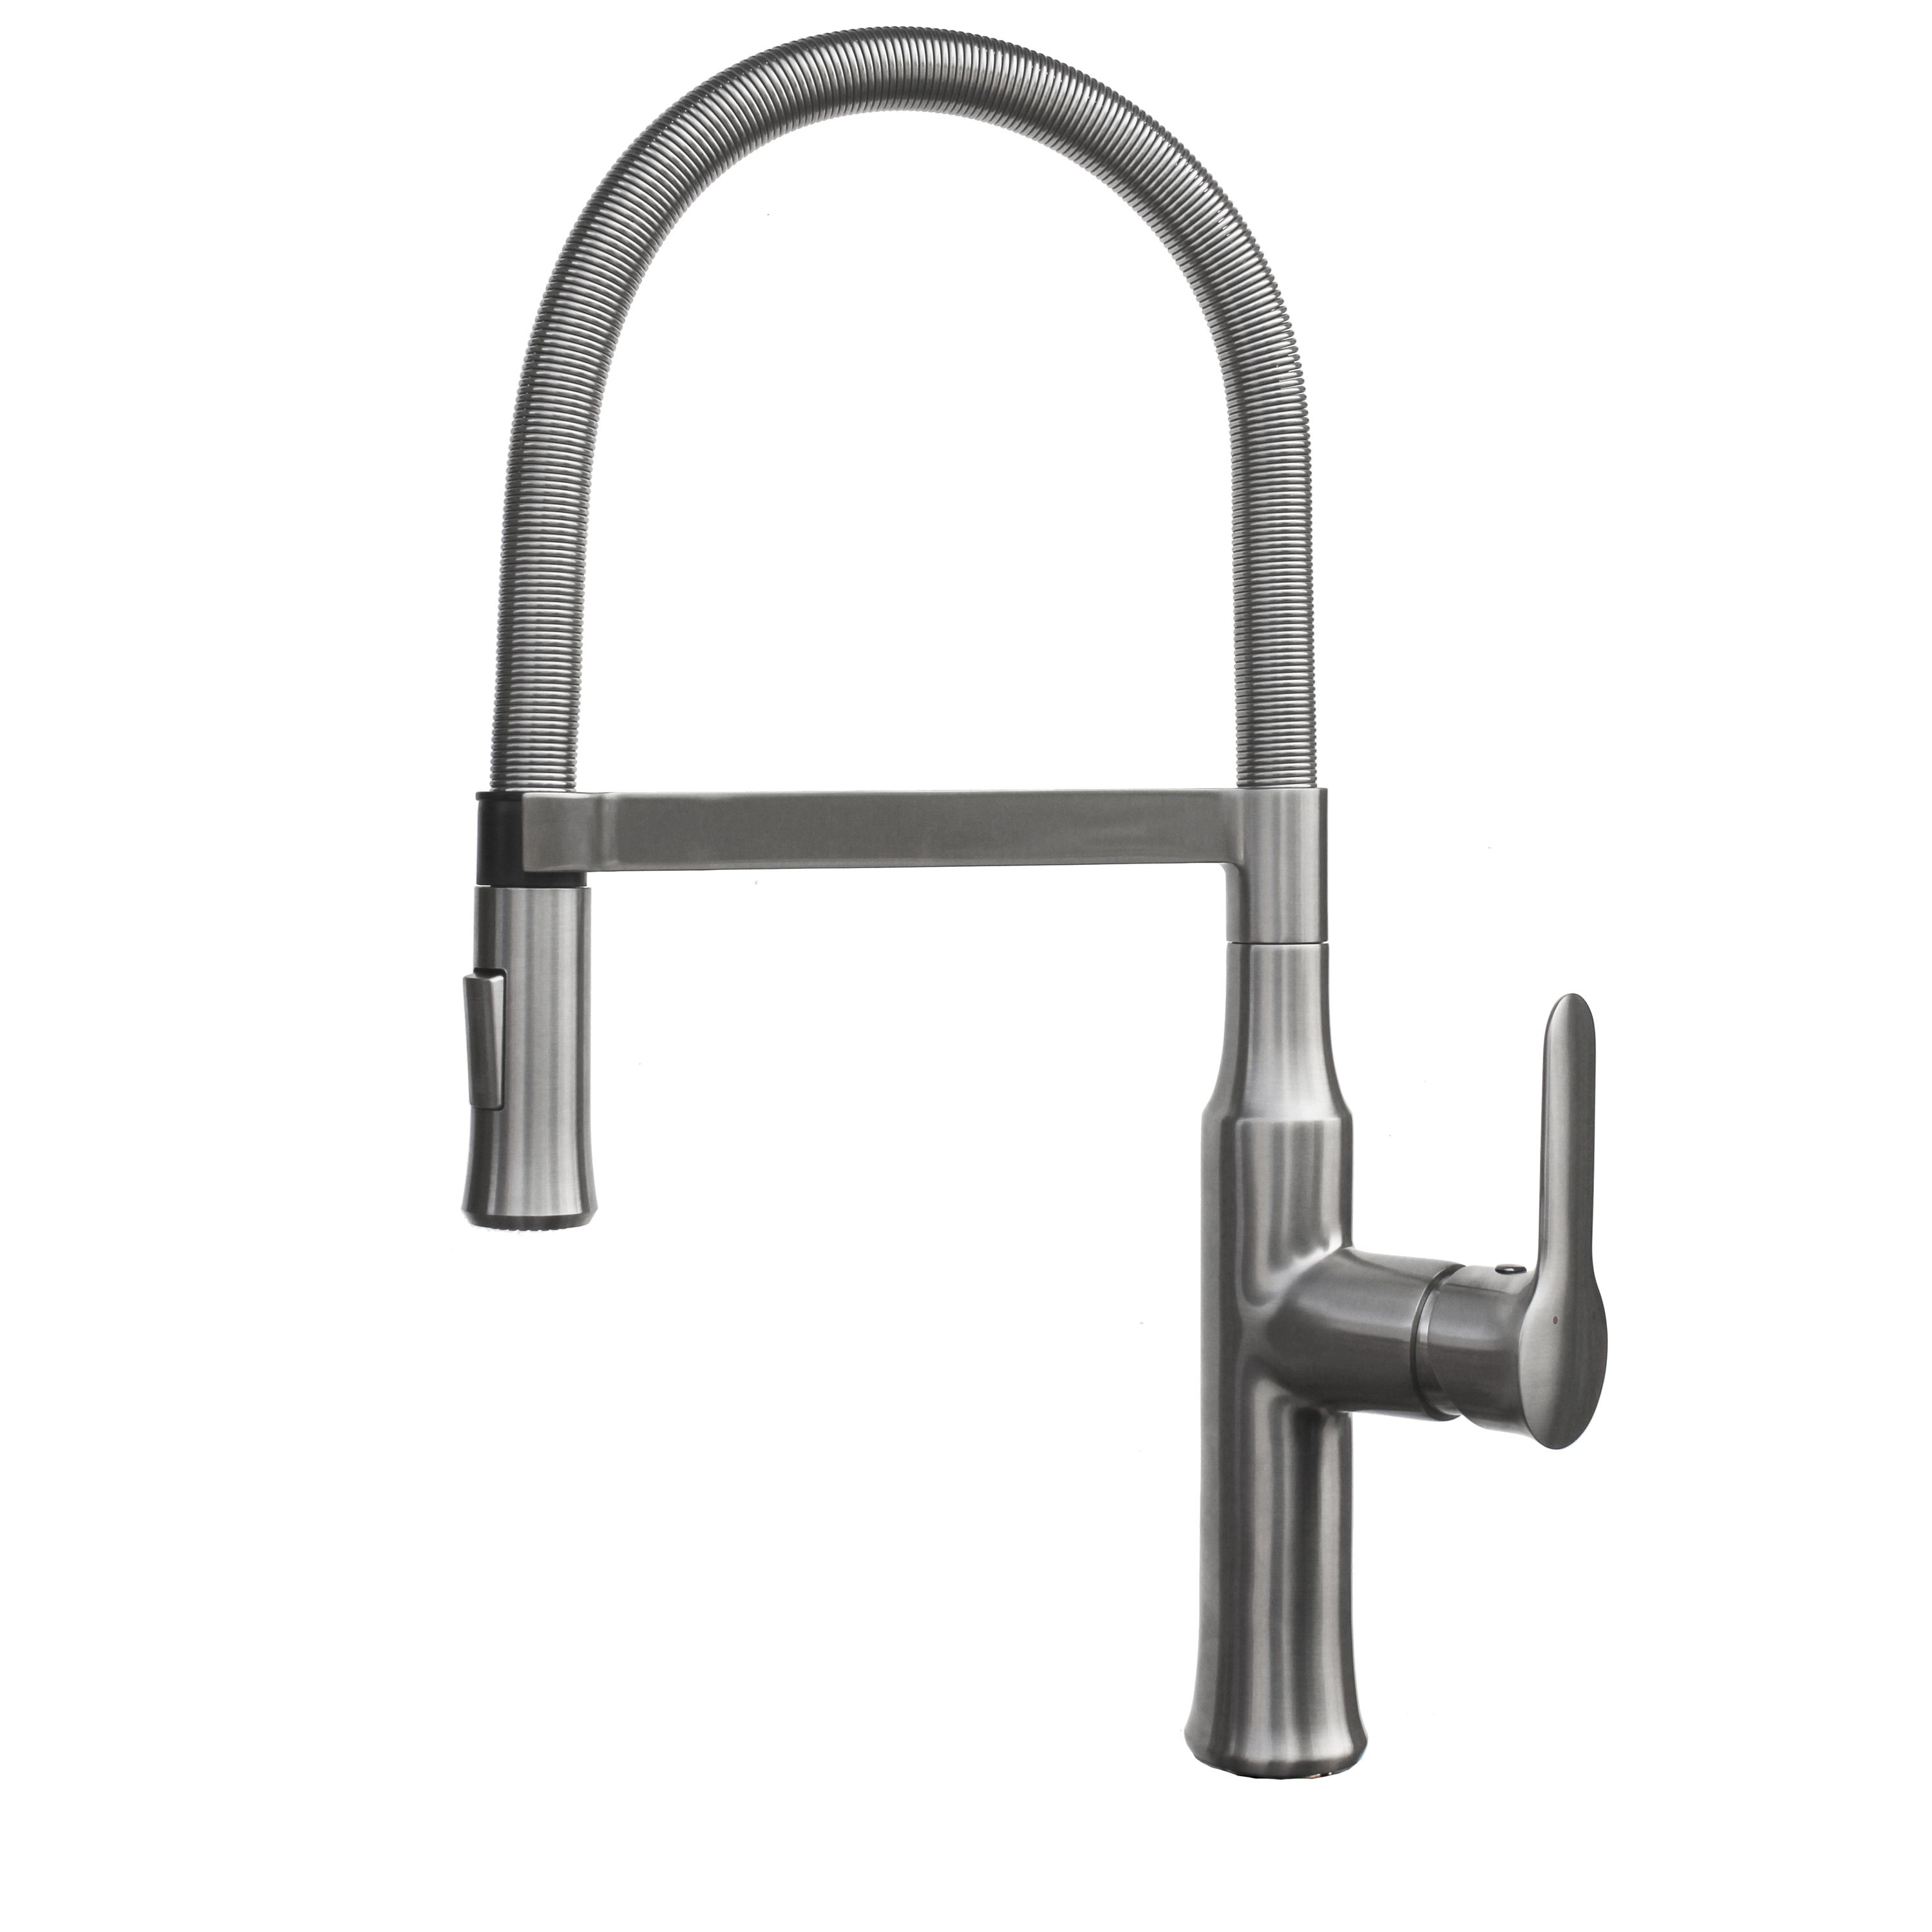 Coiled Kitchen Faucet New York Loft Design Geyser Tf61 B Brushed Nickel Commercial Style